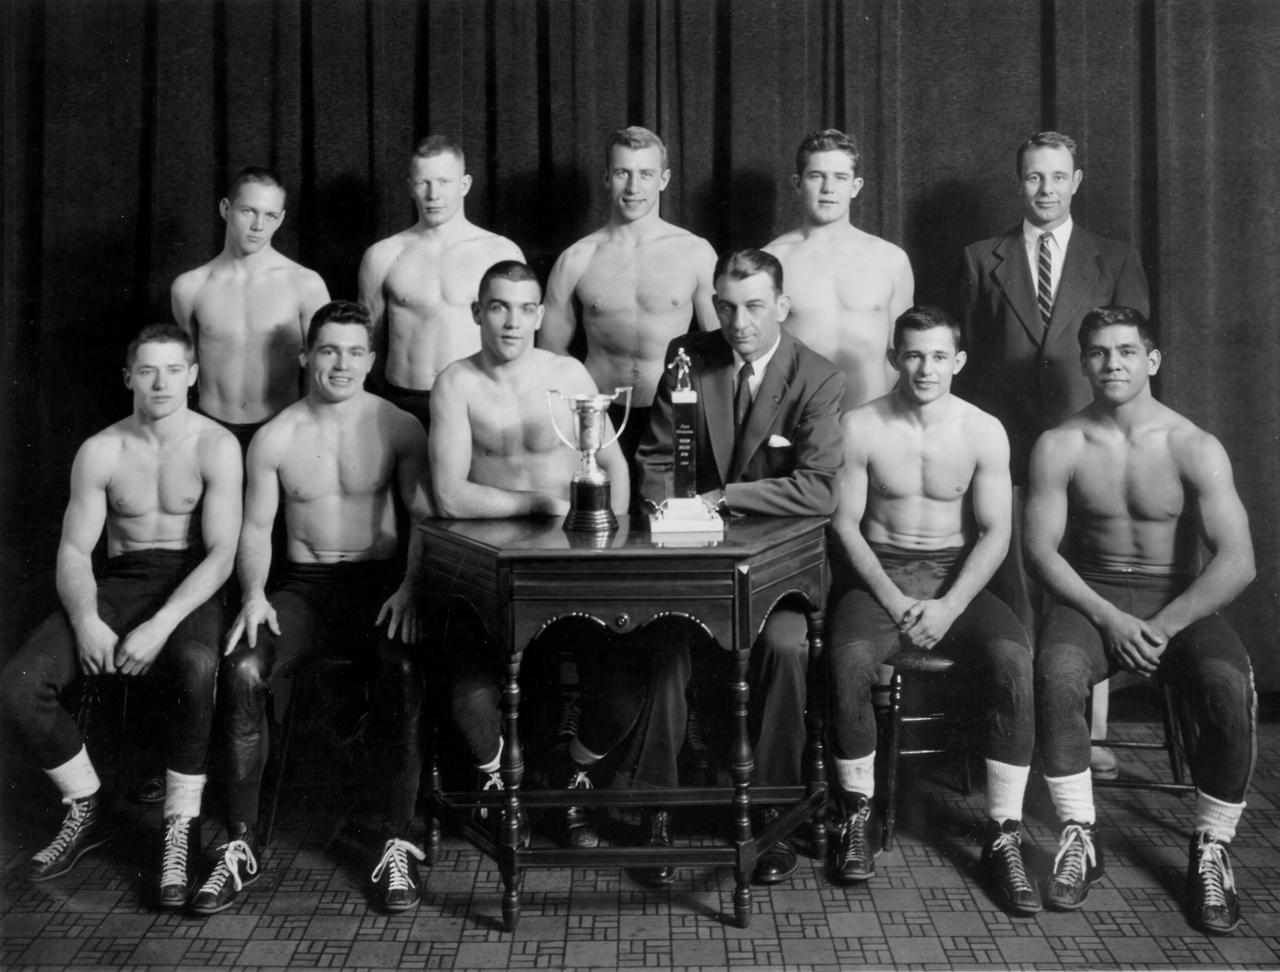 1955 University of Wisconsin Wrestling Team